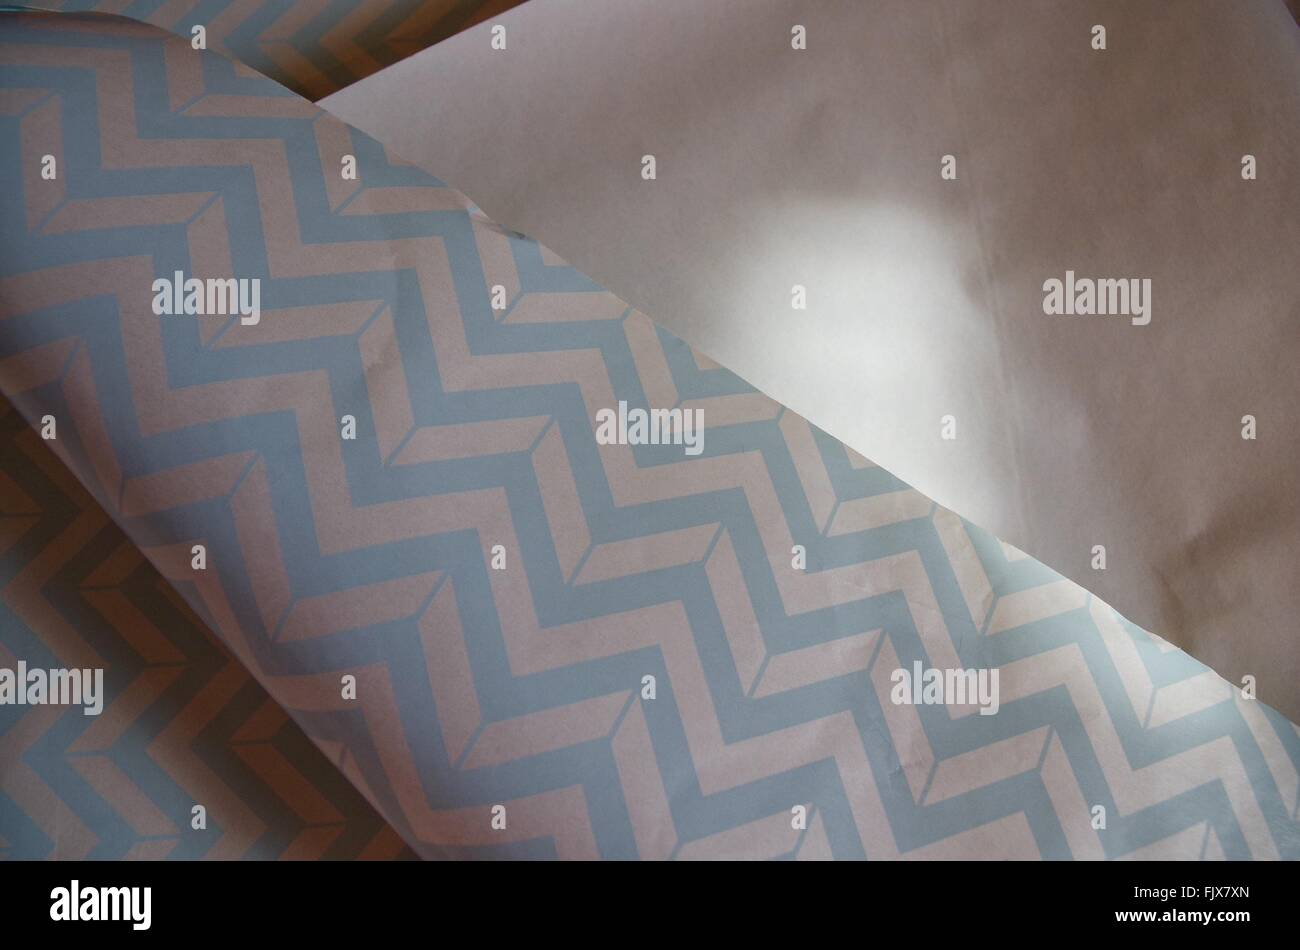 High Angle View Of Wrapping Paper Photo Stock